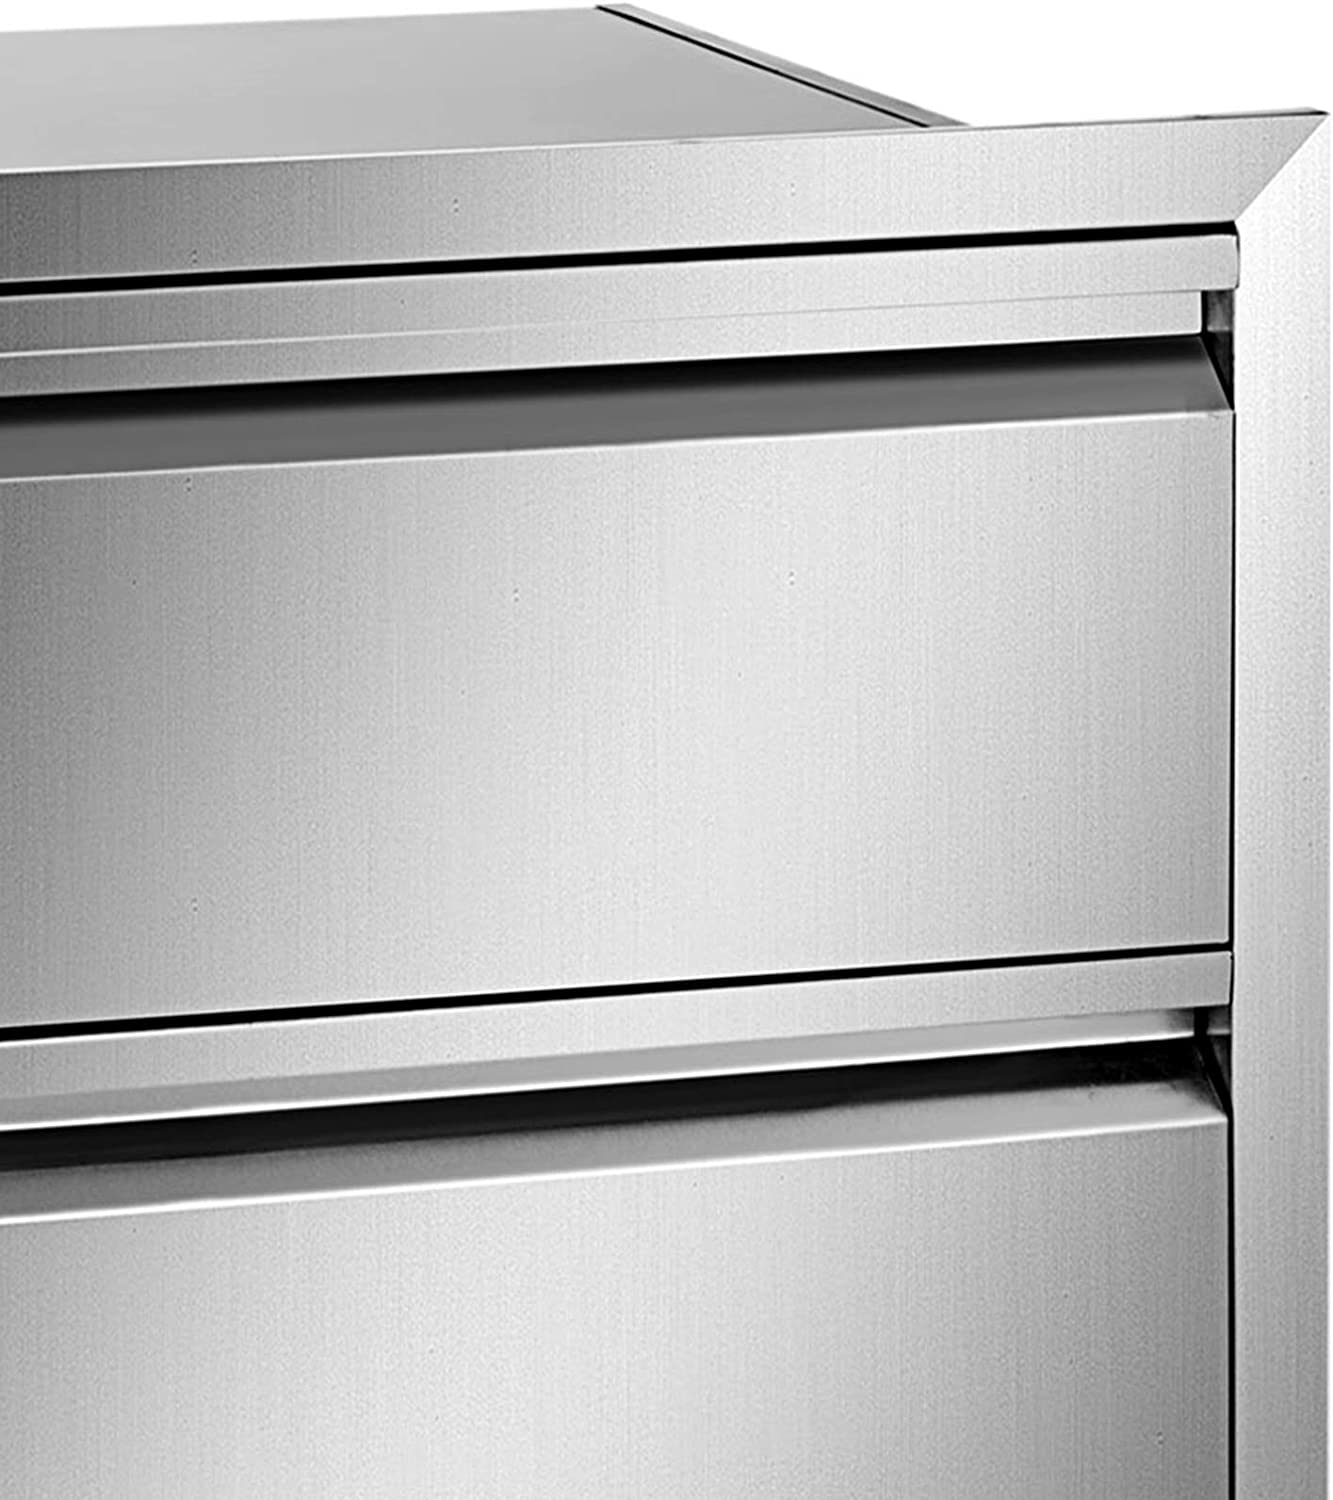 BBQ Drawers for Outdoor Kitchens or BBQ Island Mophorn 18x20.5 Inch Outdoor Kitchen Drawers Stainless Steel Flush Mount Triple Drawers,18W x 20.5H x 20.7D Inch with Stainless Steel Handle